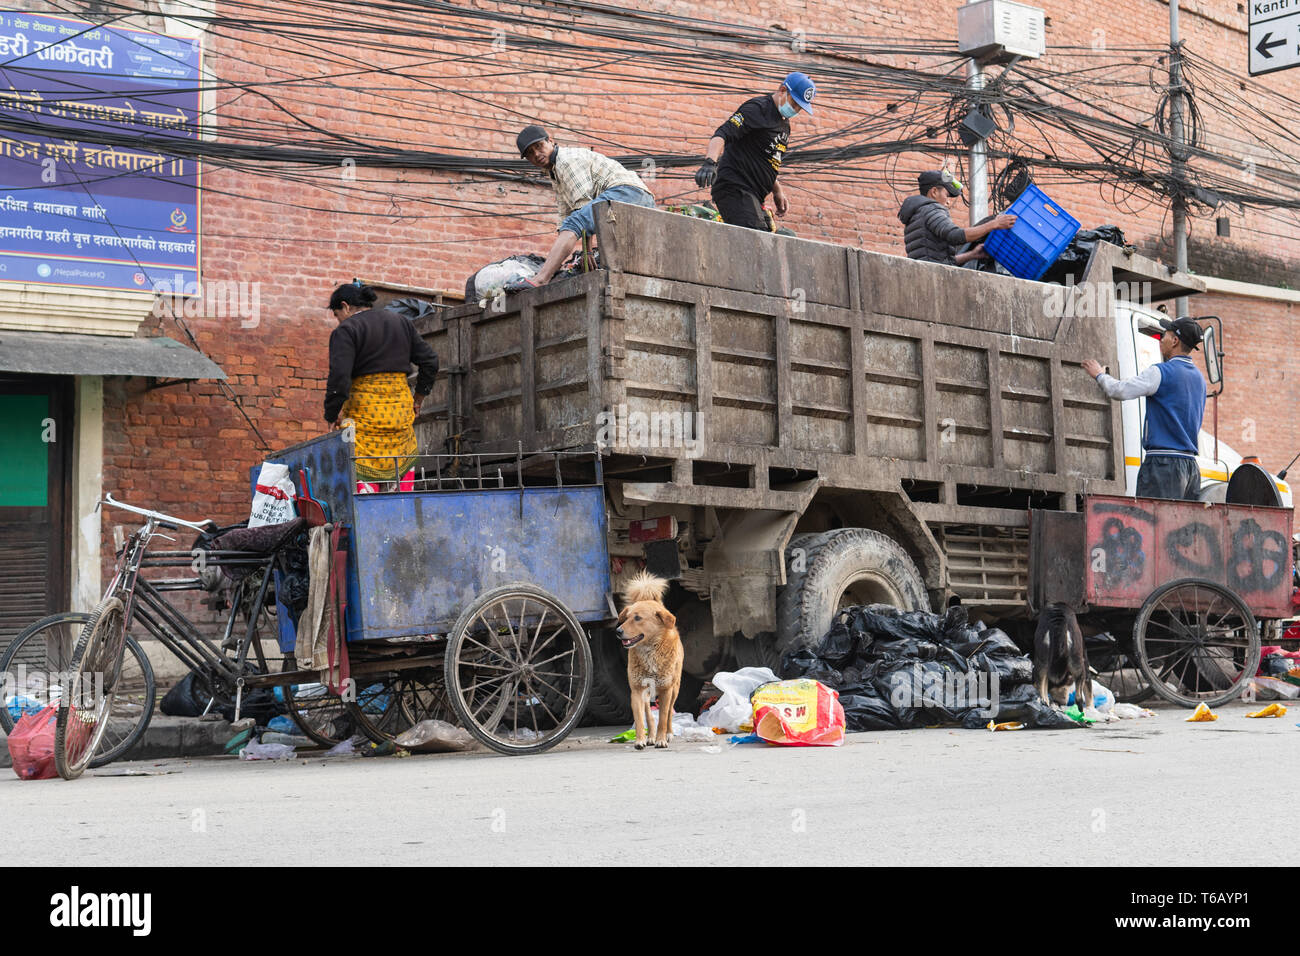 Kathmandu, Nepal - April 20th, 2019 - Garbage collectors and dogs sorting through piles of trash early in the morning in the street. - Stock Image